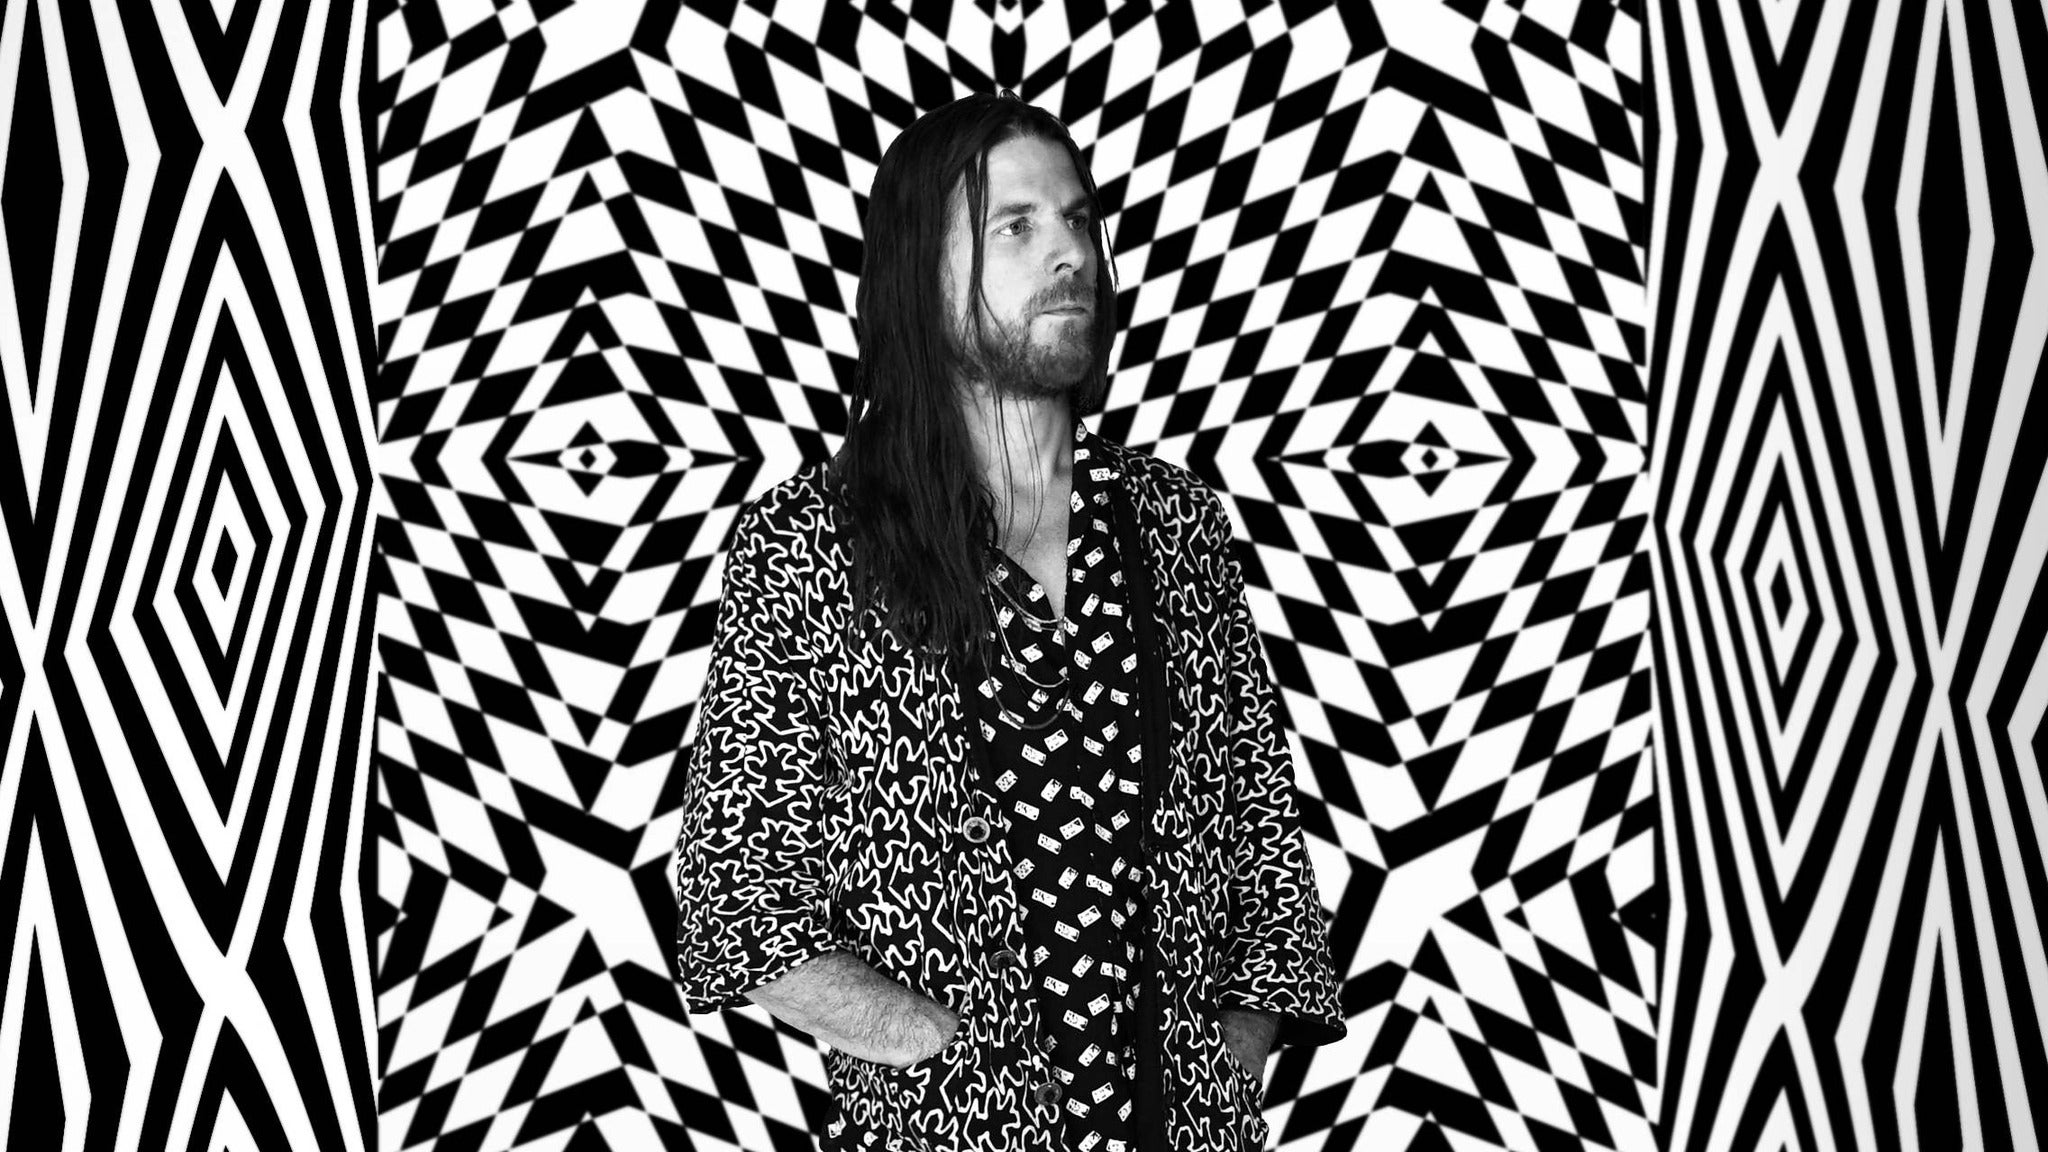 Jonathan Wilson at The Independent